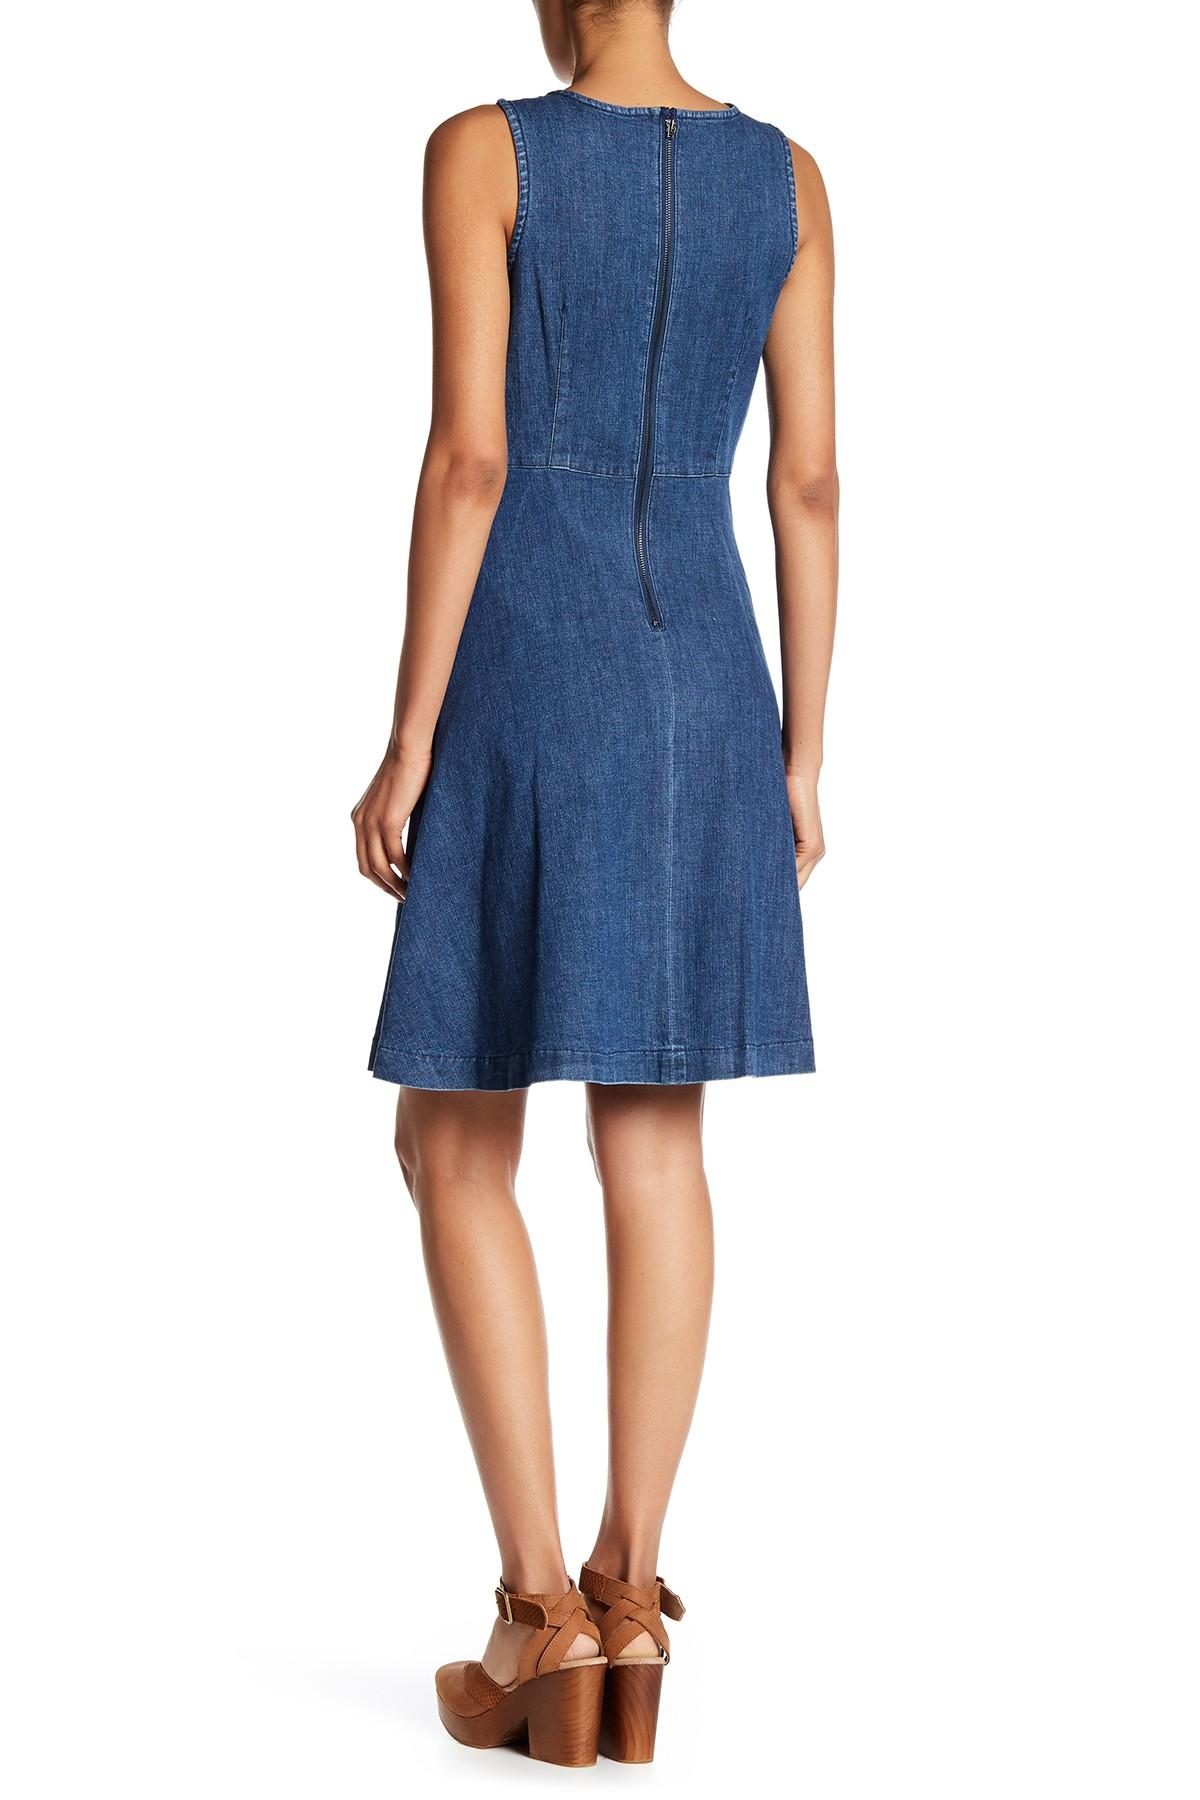 lyst  sharagano sleeveless denim dress in blue